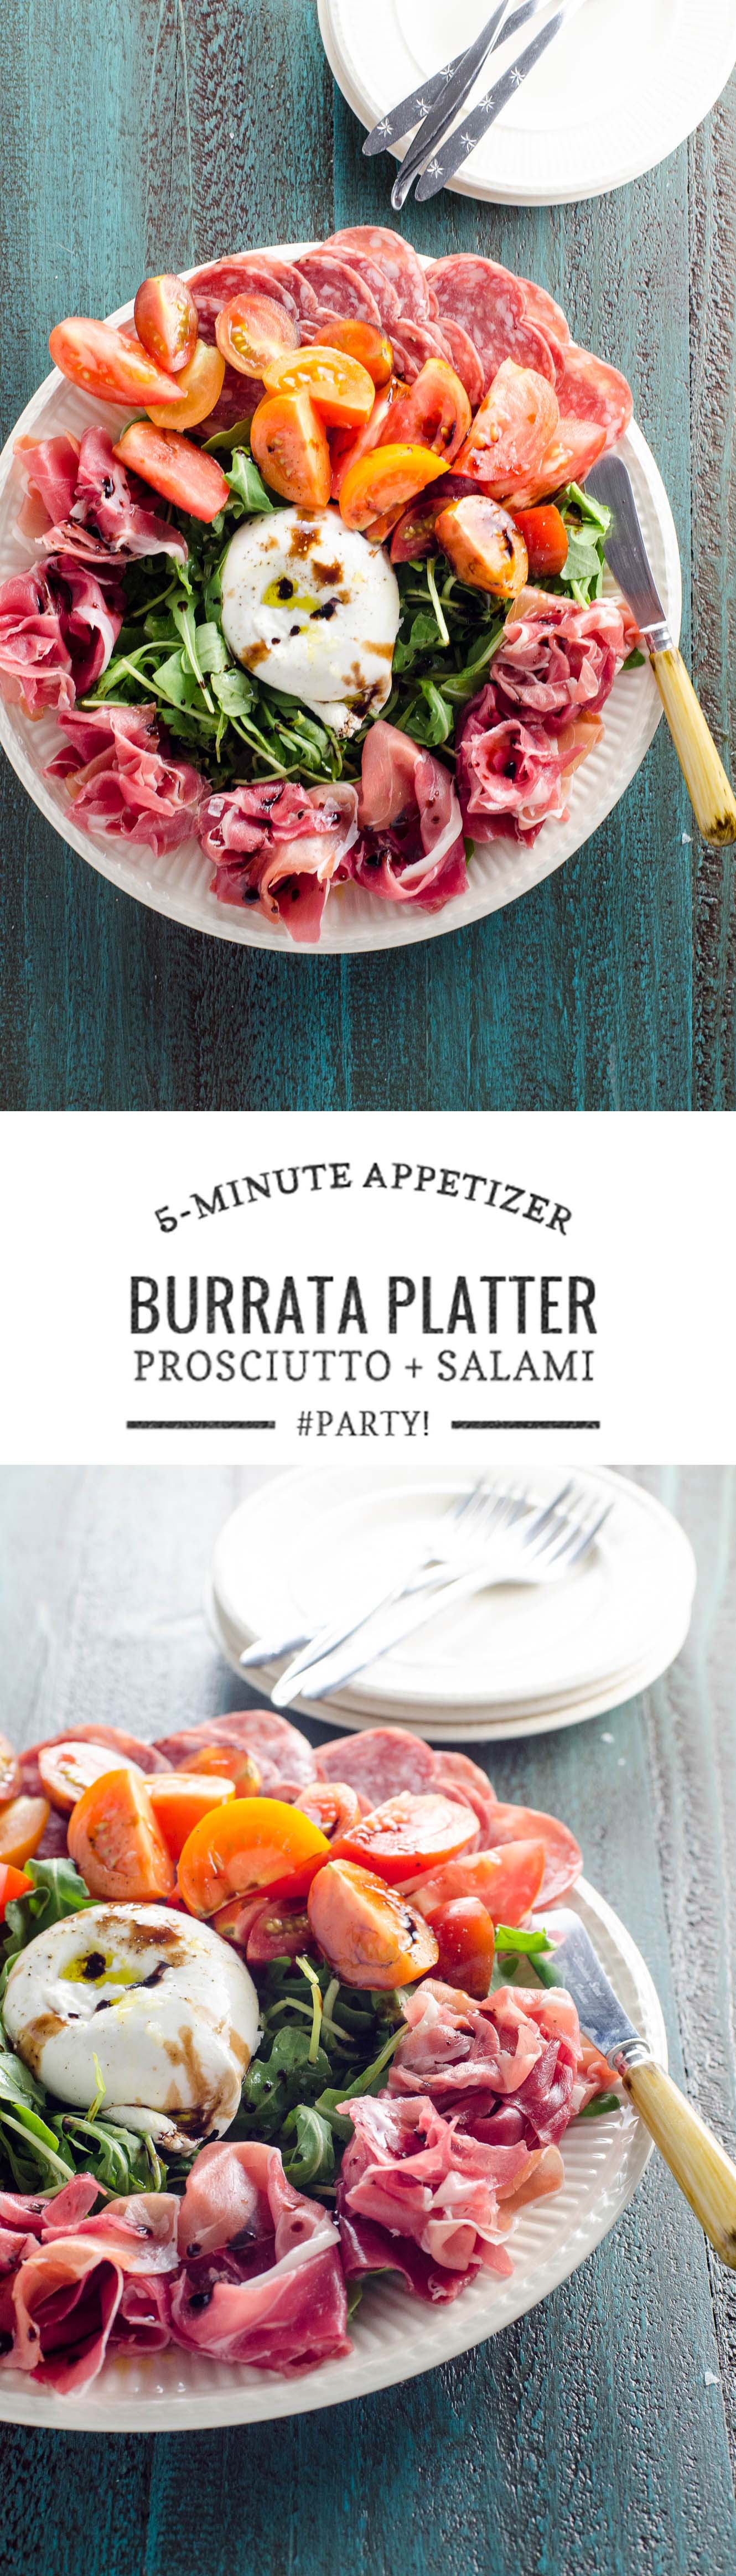 A quick and easy appetizer (or, hey, summer dinner) with tons of bang for our buck: burrata platter with prosciutto, salami, arugula and tomatoes.